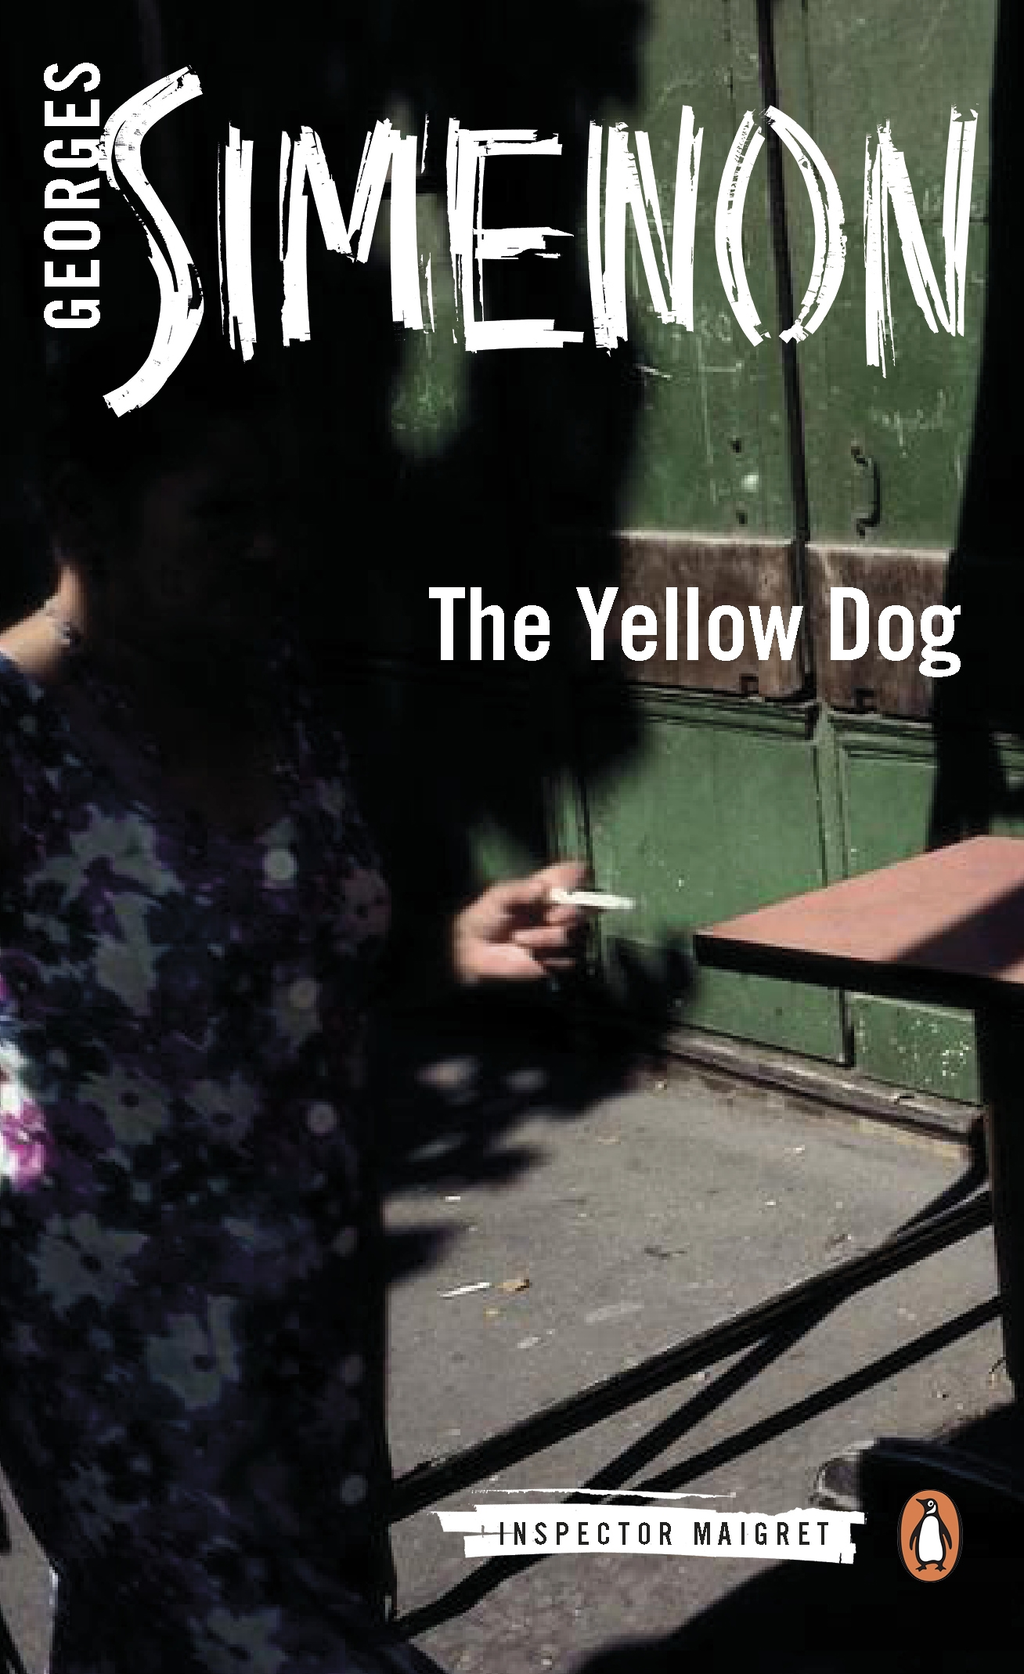 The Yellow Dog Inspector Maigret #5